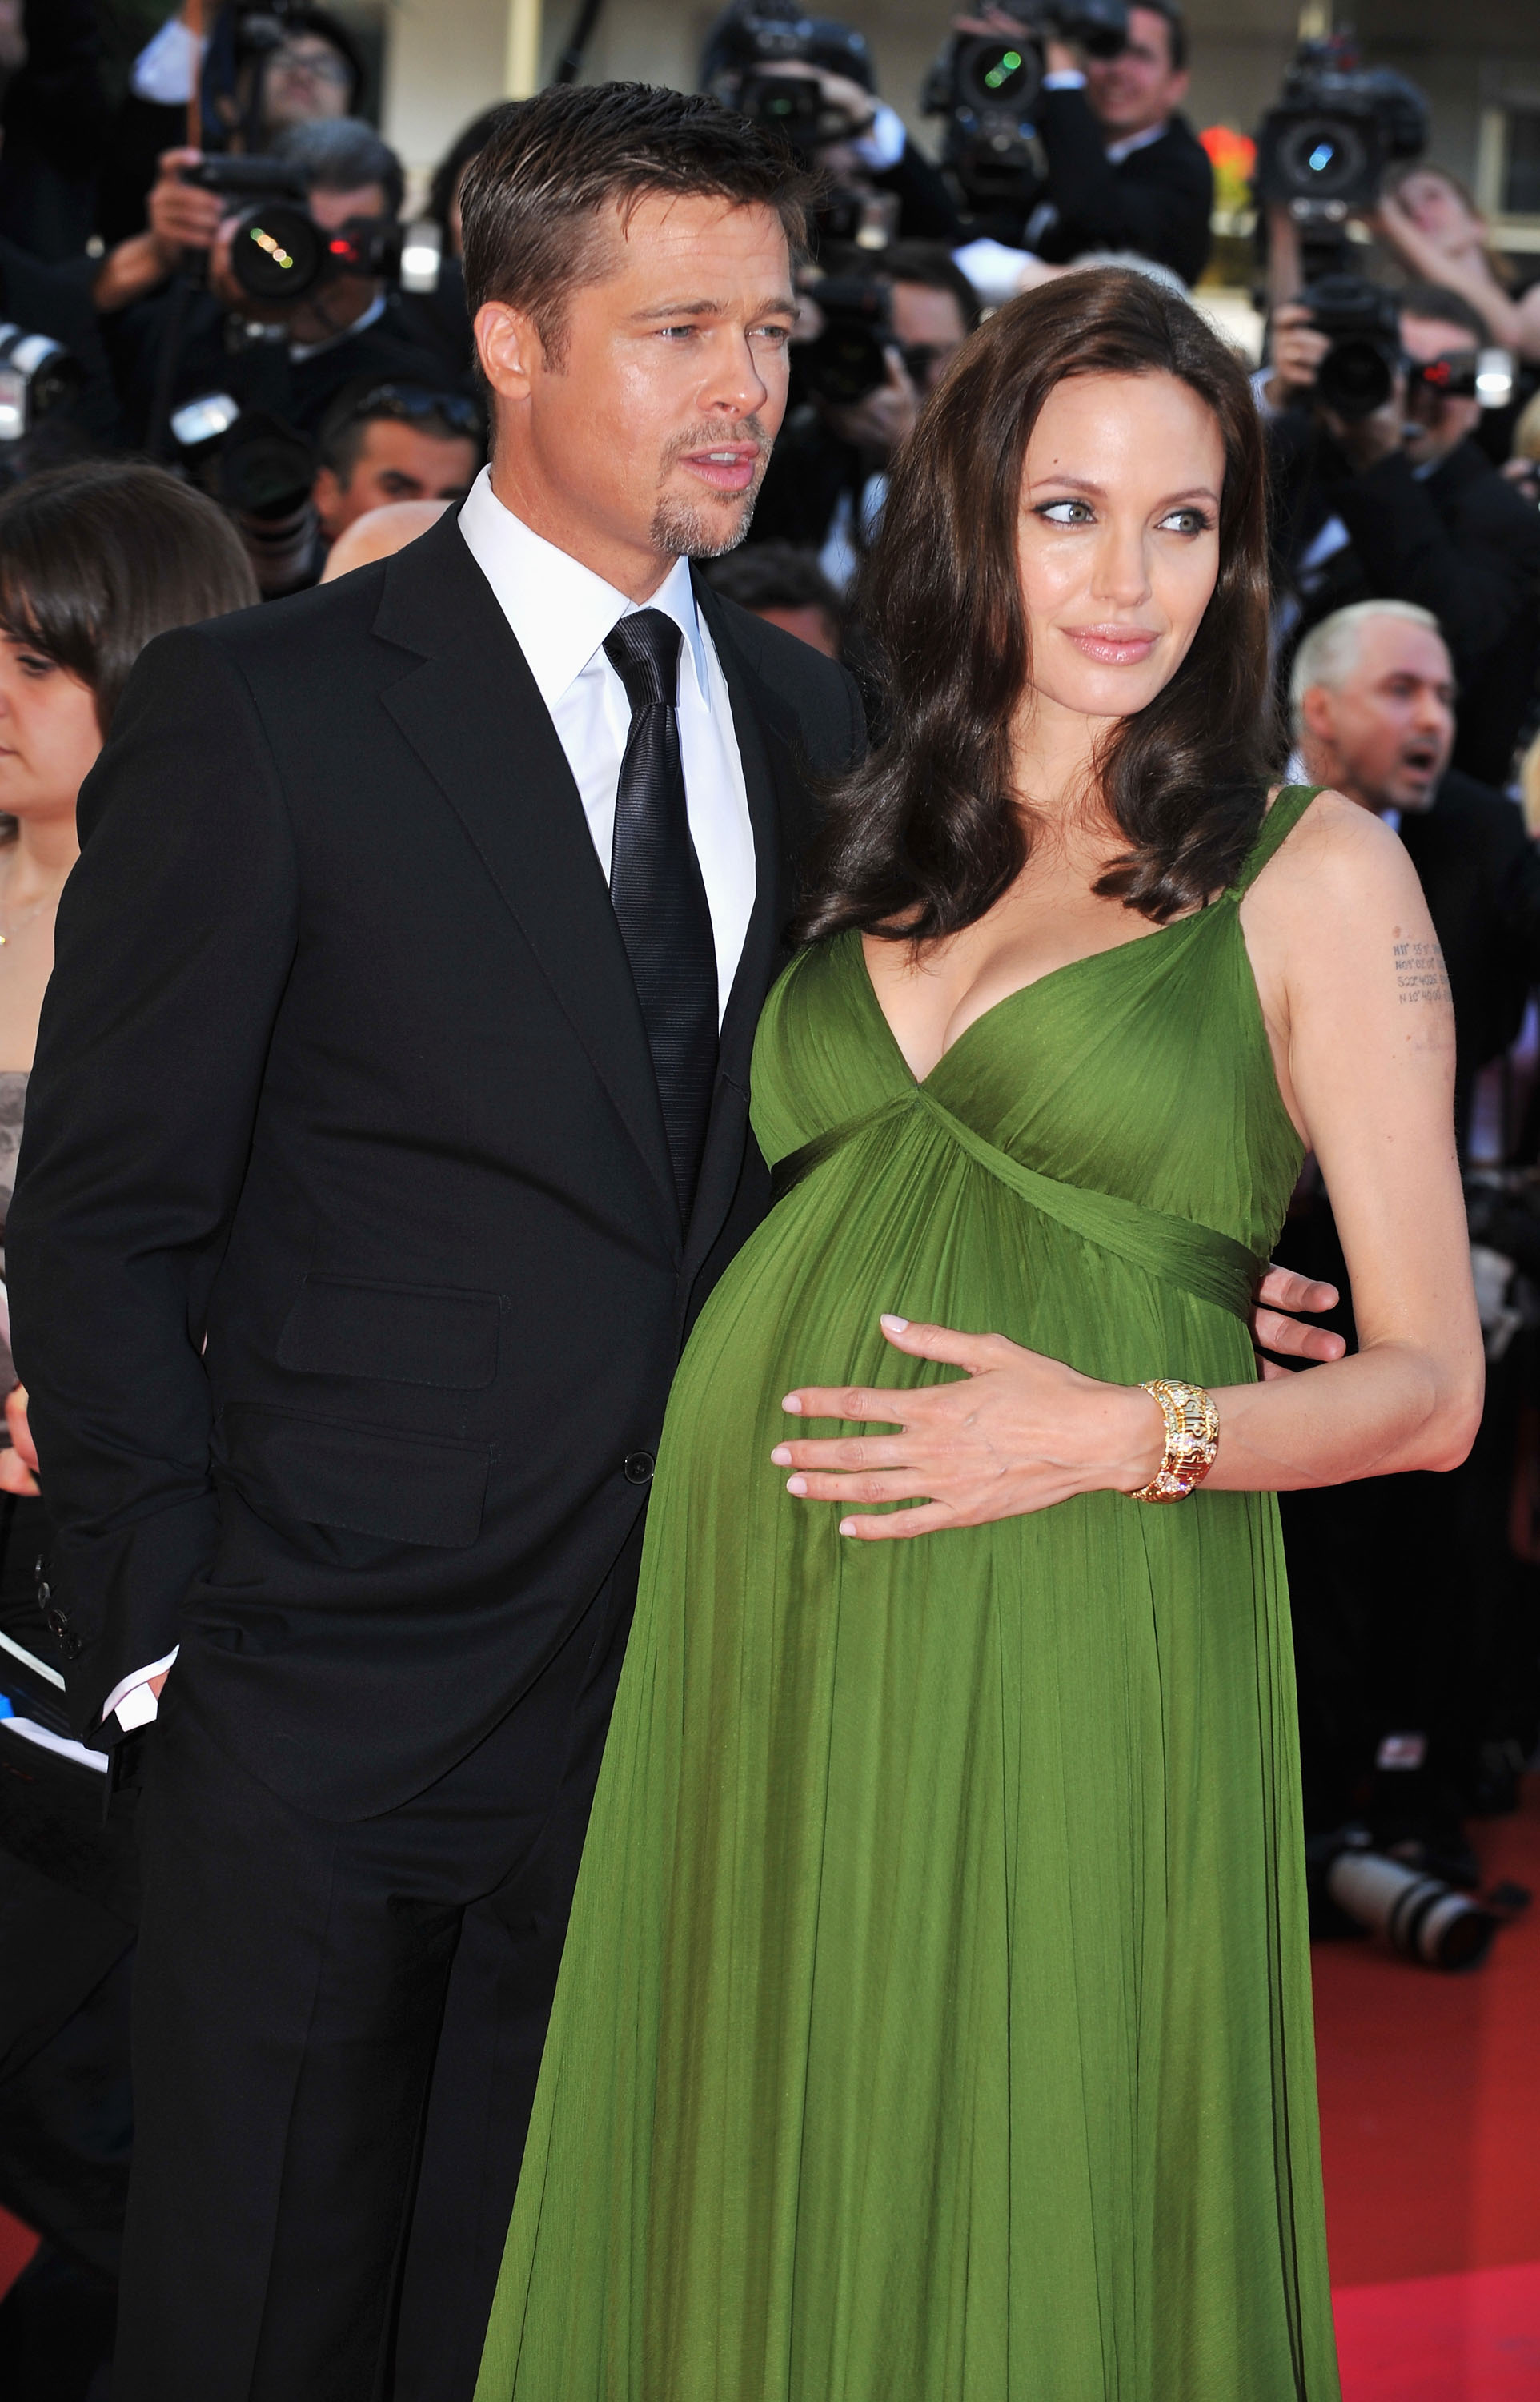 """CANNES, FRANCE - MAY 15: Actors Brad Pitt and Angelina Jolie attend the """"Kung Fu Panda"""" premiere at the Palais des Festivals during the 61st Cannes International Film Festival on May 15, 2008 in Cannes, France. (Photo by Pascal Le Segretain/Getty Images)"""